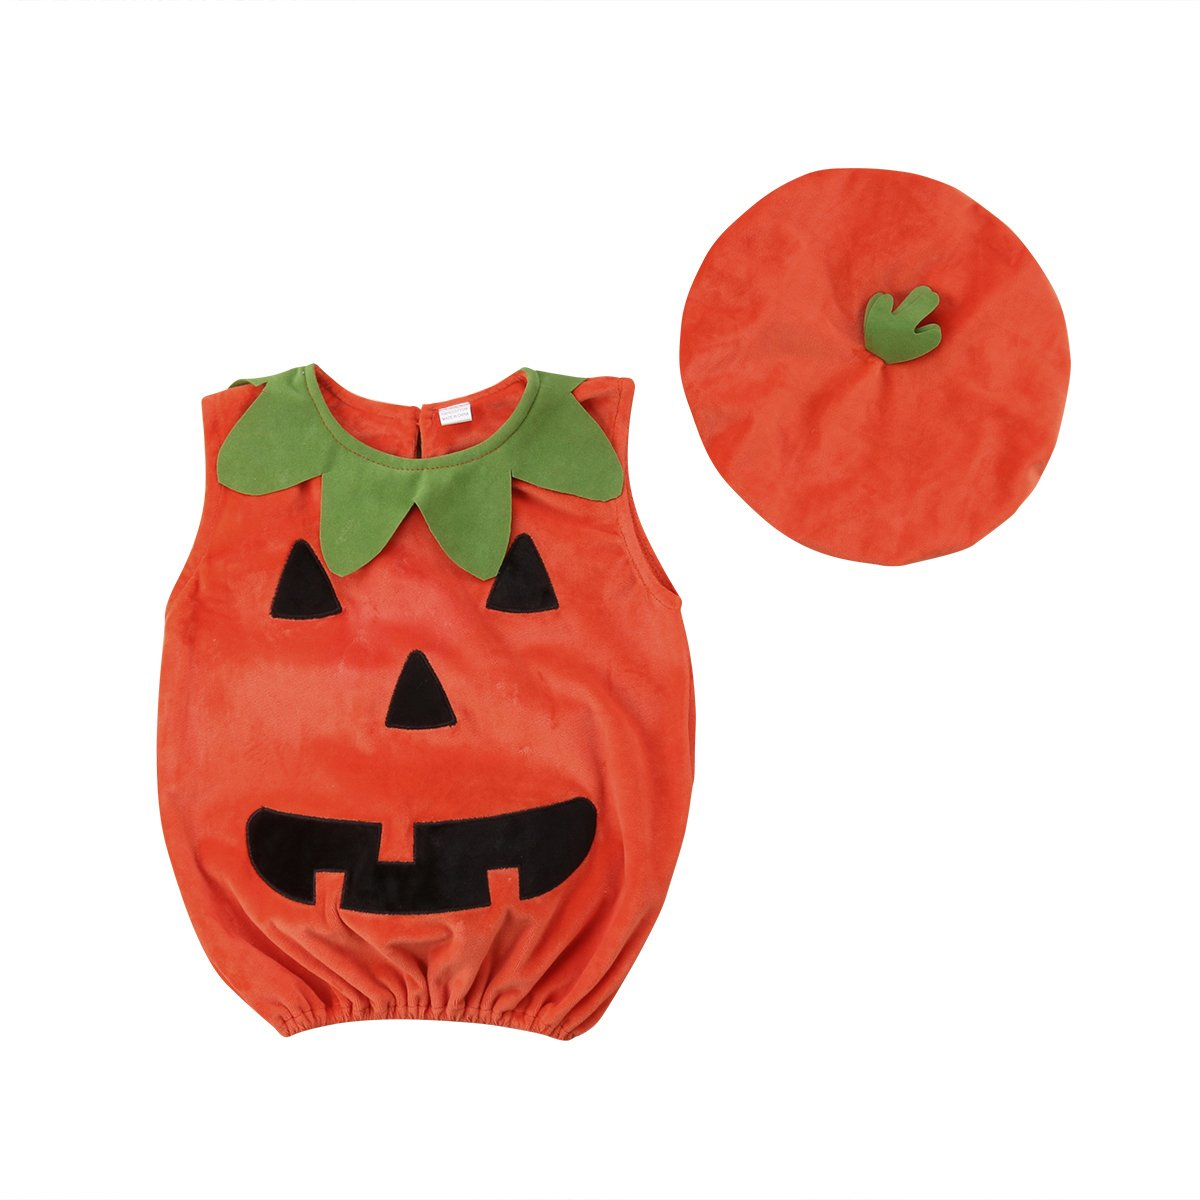 Toddler Infant Baby Boy Girl Pumpkin Halloween Costumes Romper Bodysuit Outfit with Hat 90/6-12 Months